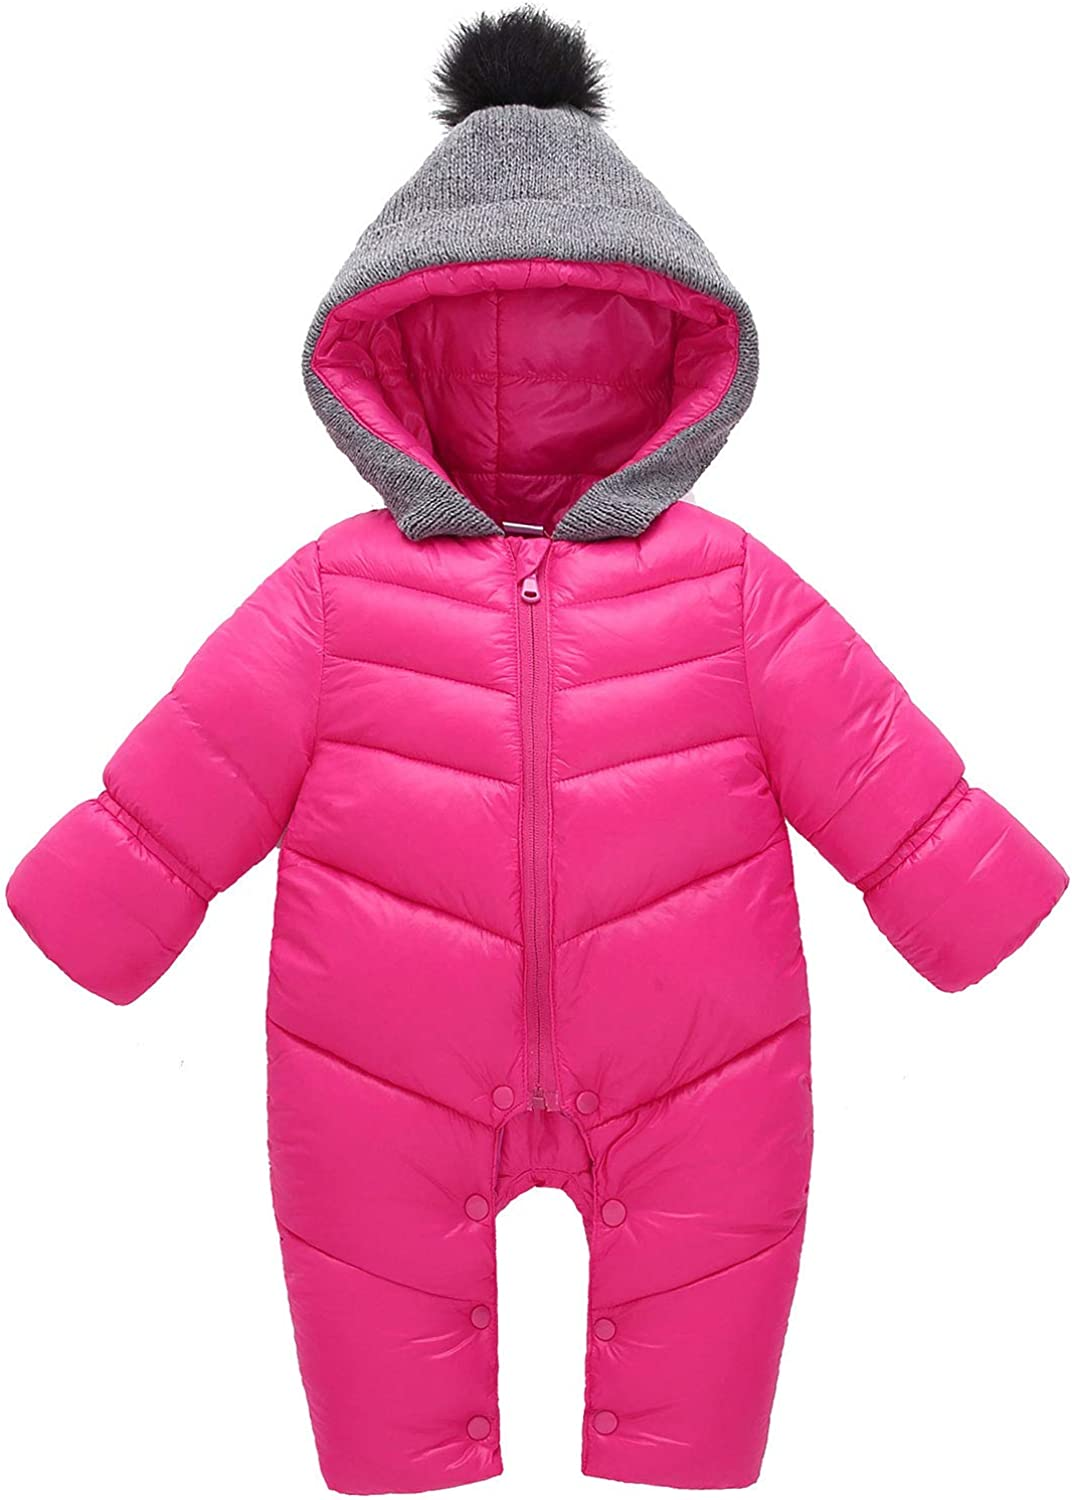 Happy Cherry Unisex Baby Snowsuit Max San Francisco Mall 87% OFF Winter Hooded Clothes Down Inf